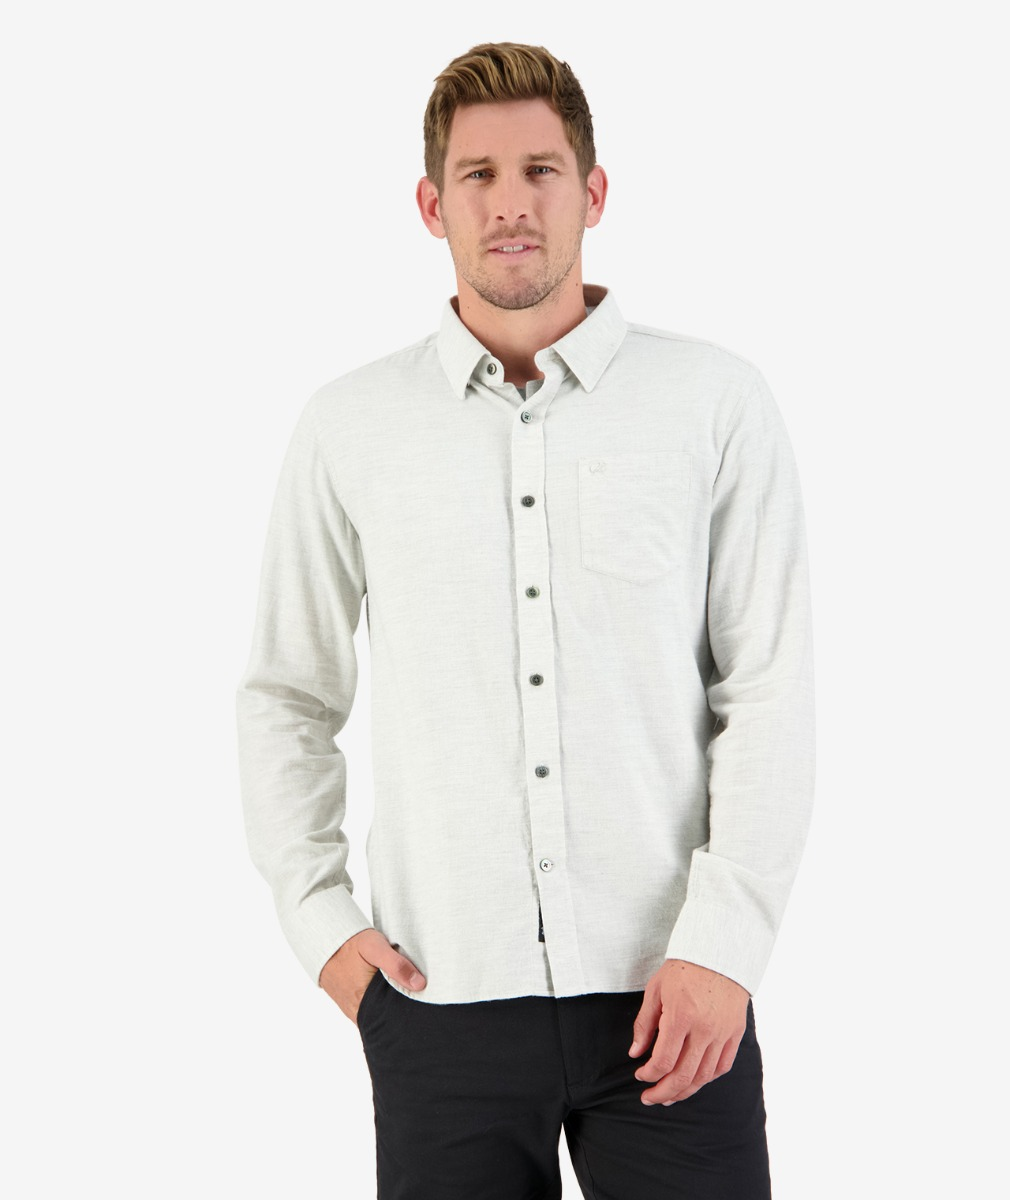 Morrisons L/S Shirt in Grey Melange